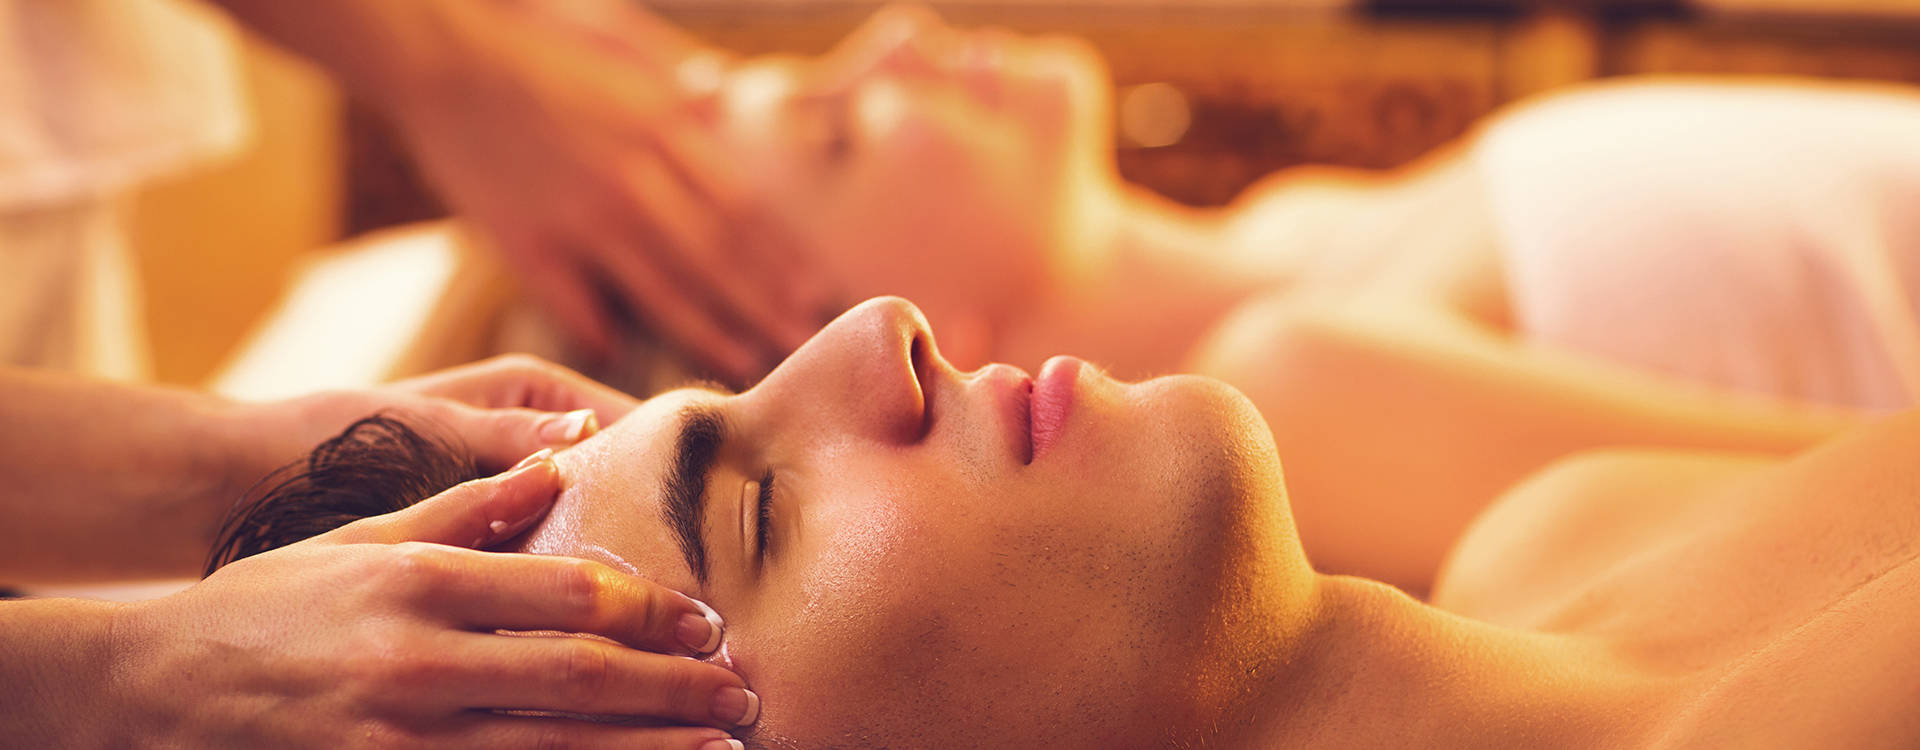 Complimentary 50 minutes body massage at Health Club for